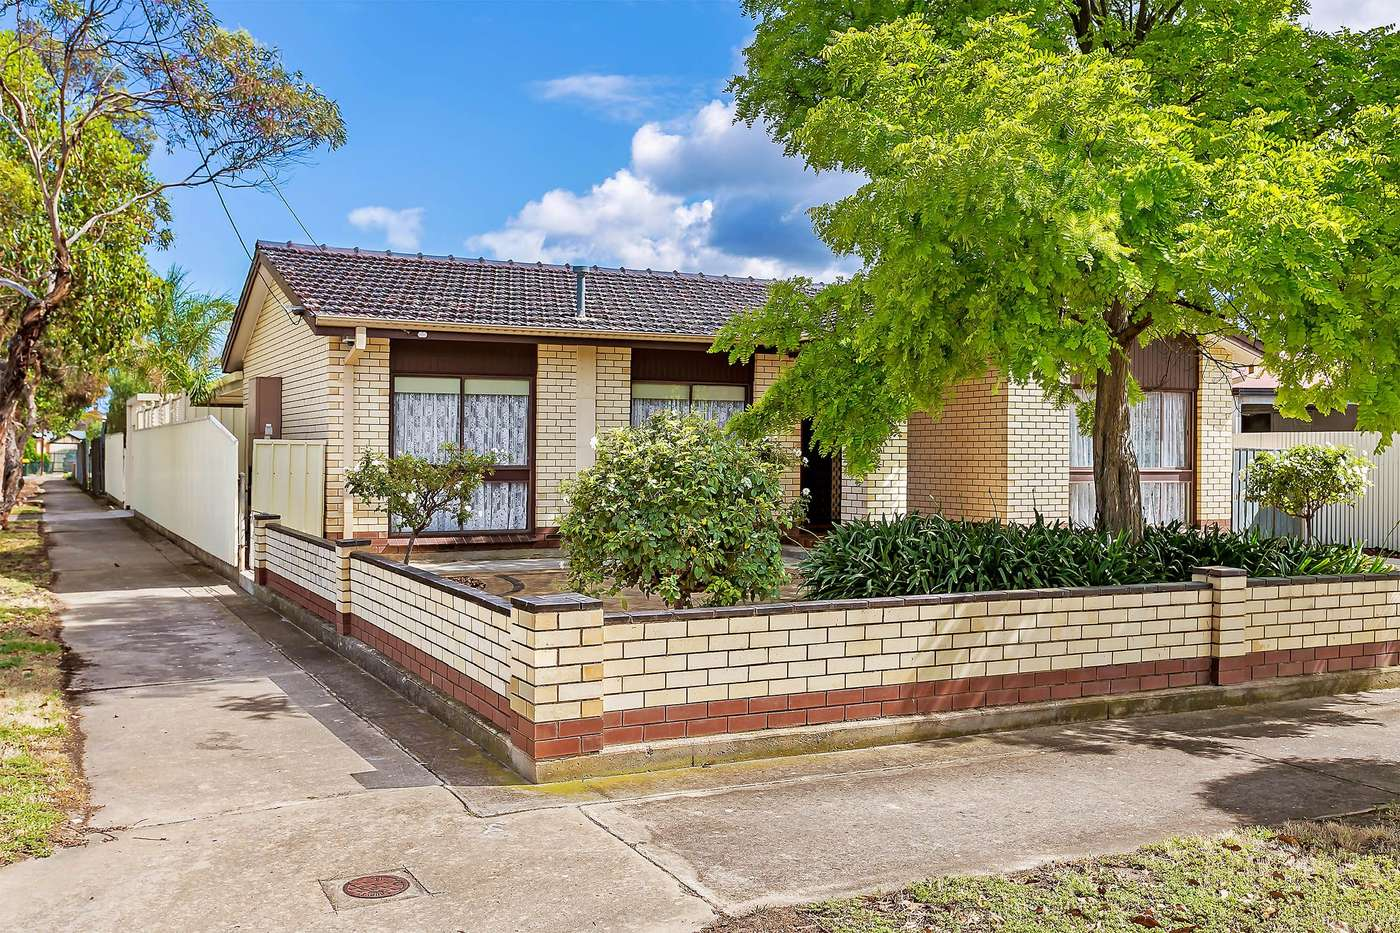 Main view of Homely house listing, 13 Allenby Road, Ottoway, SA 5013